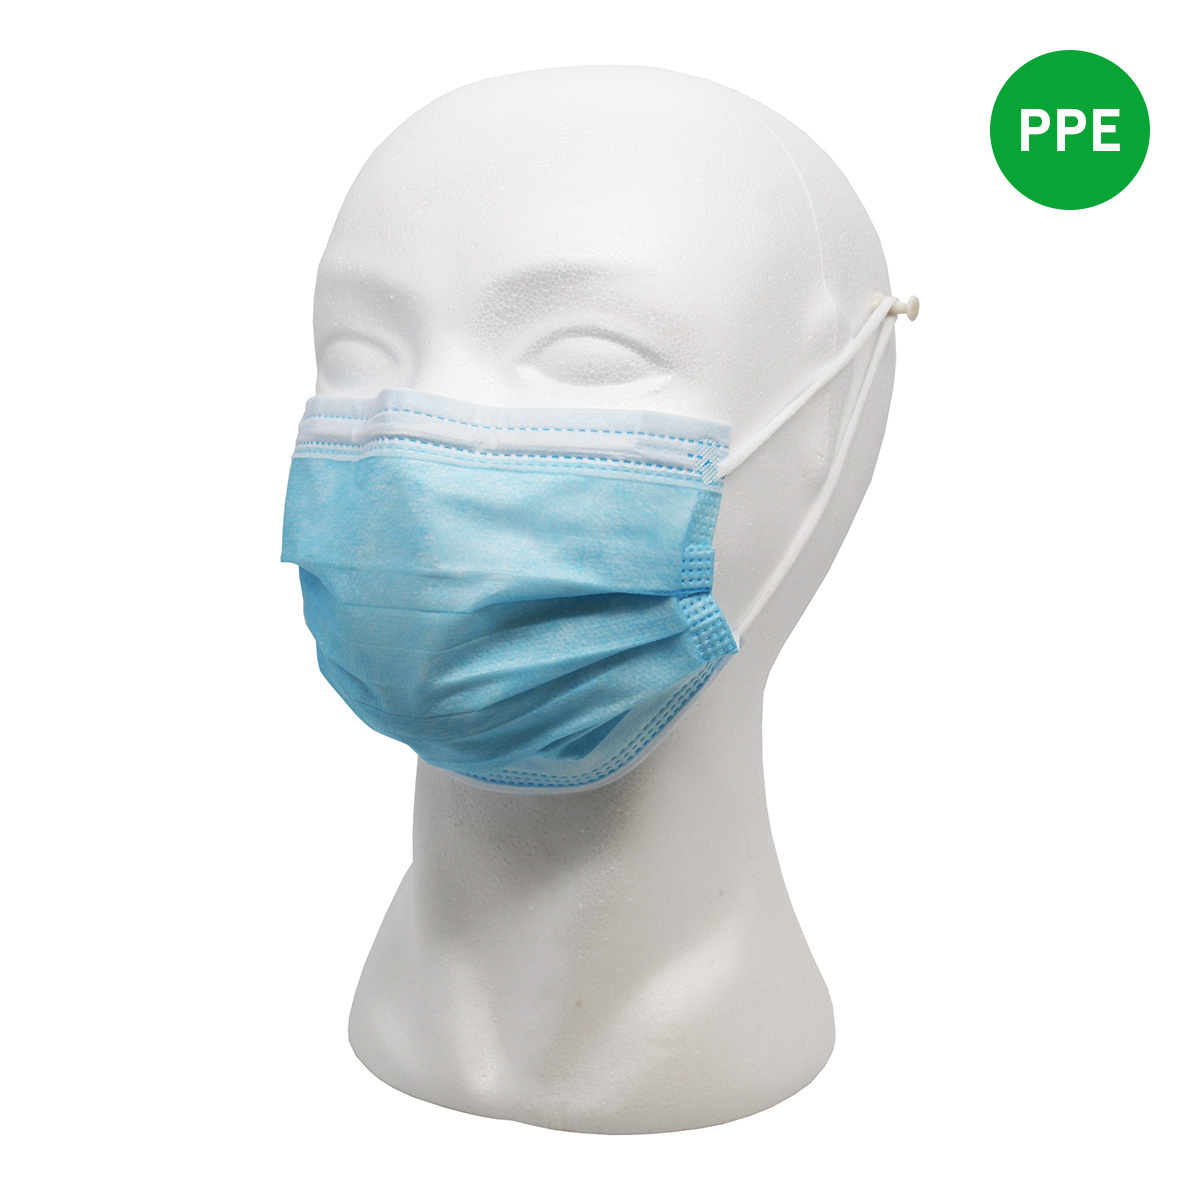 Surgical Face Masks - Type IIR